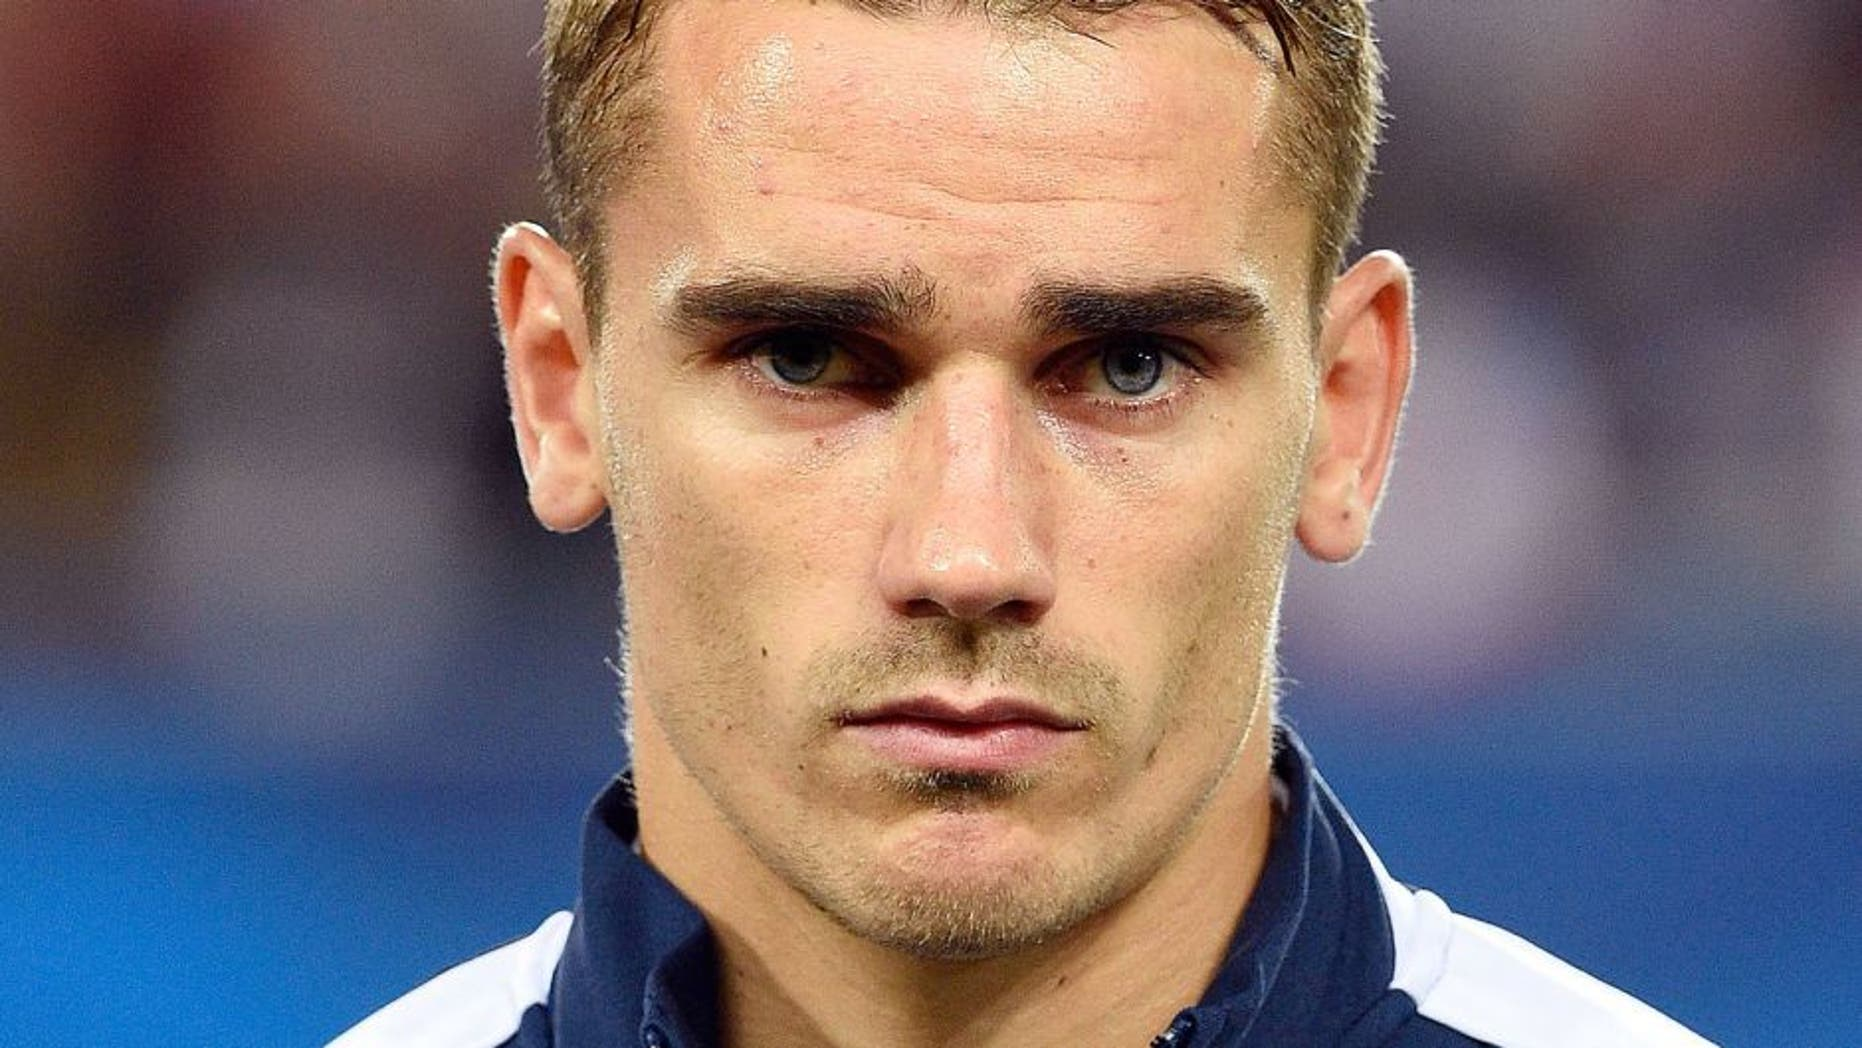 France's forward Antoine Griezmann is pictured during the Euro 2016 friendly football match France vs Serbia on September 7, 2015, at the Nouveau Stade stadium, in Bordeaux, western France. AFP PHOTO / FRANCK FIFE (Photo credit should read FRANCK FIFE/AFP/Getty Images)